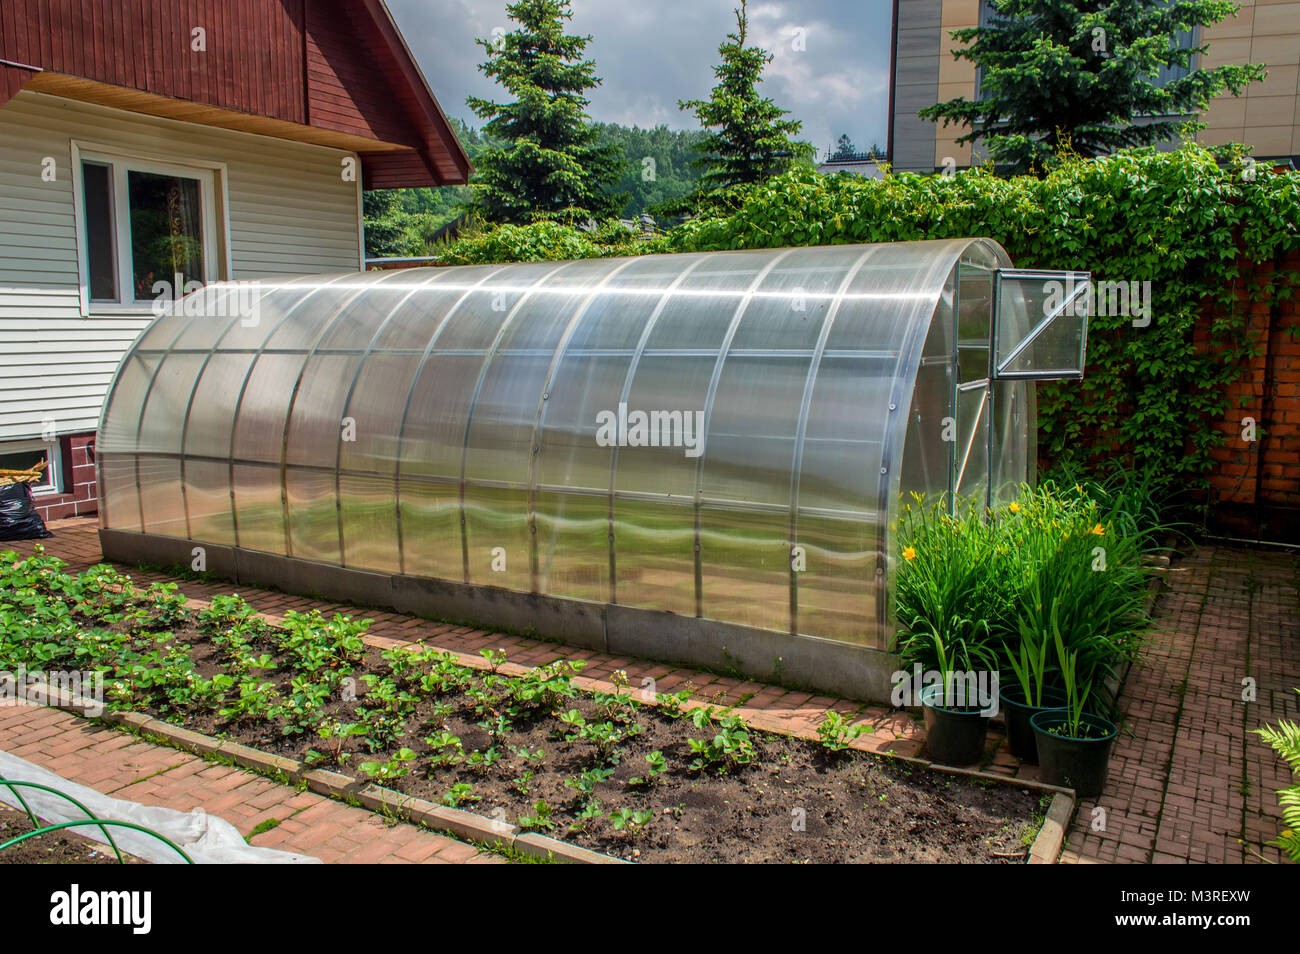 Outstanding Small Garden Greenhouse Stock Photo 174464273 Alamy Home Interior And Landscaping Ologienasavecom